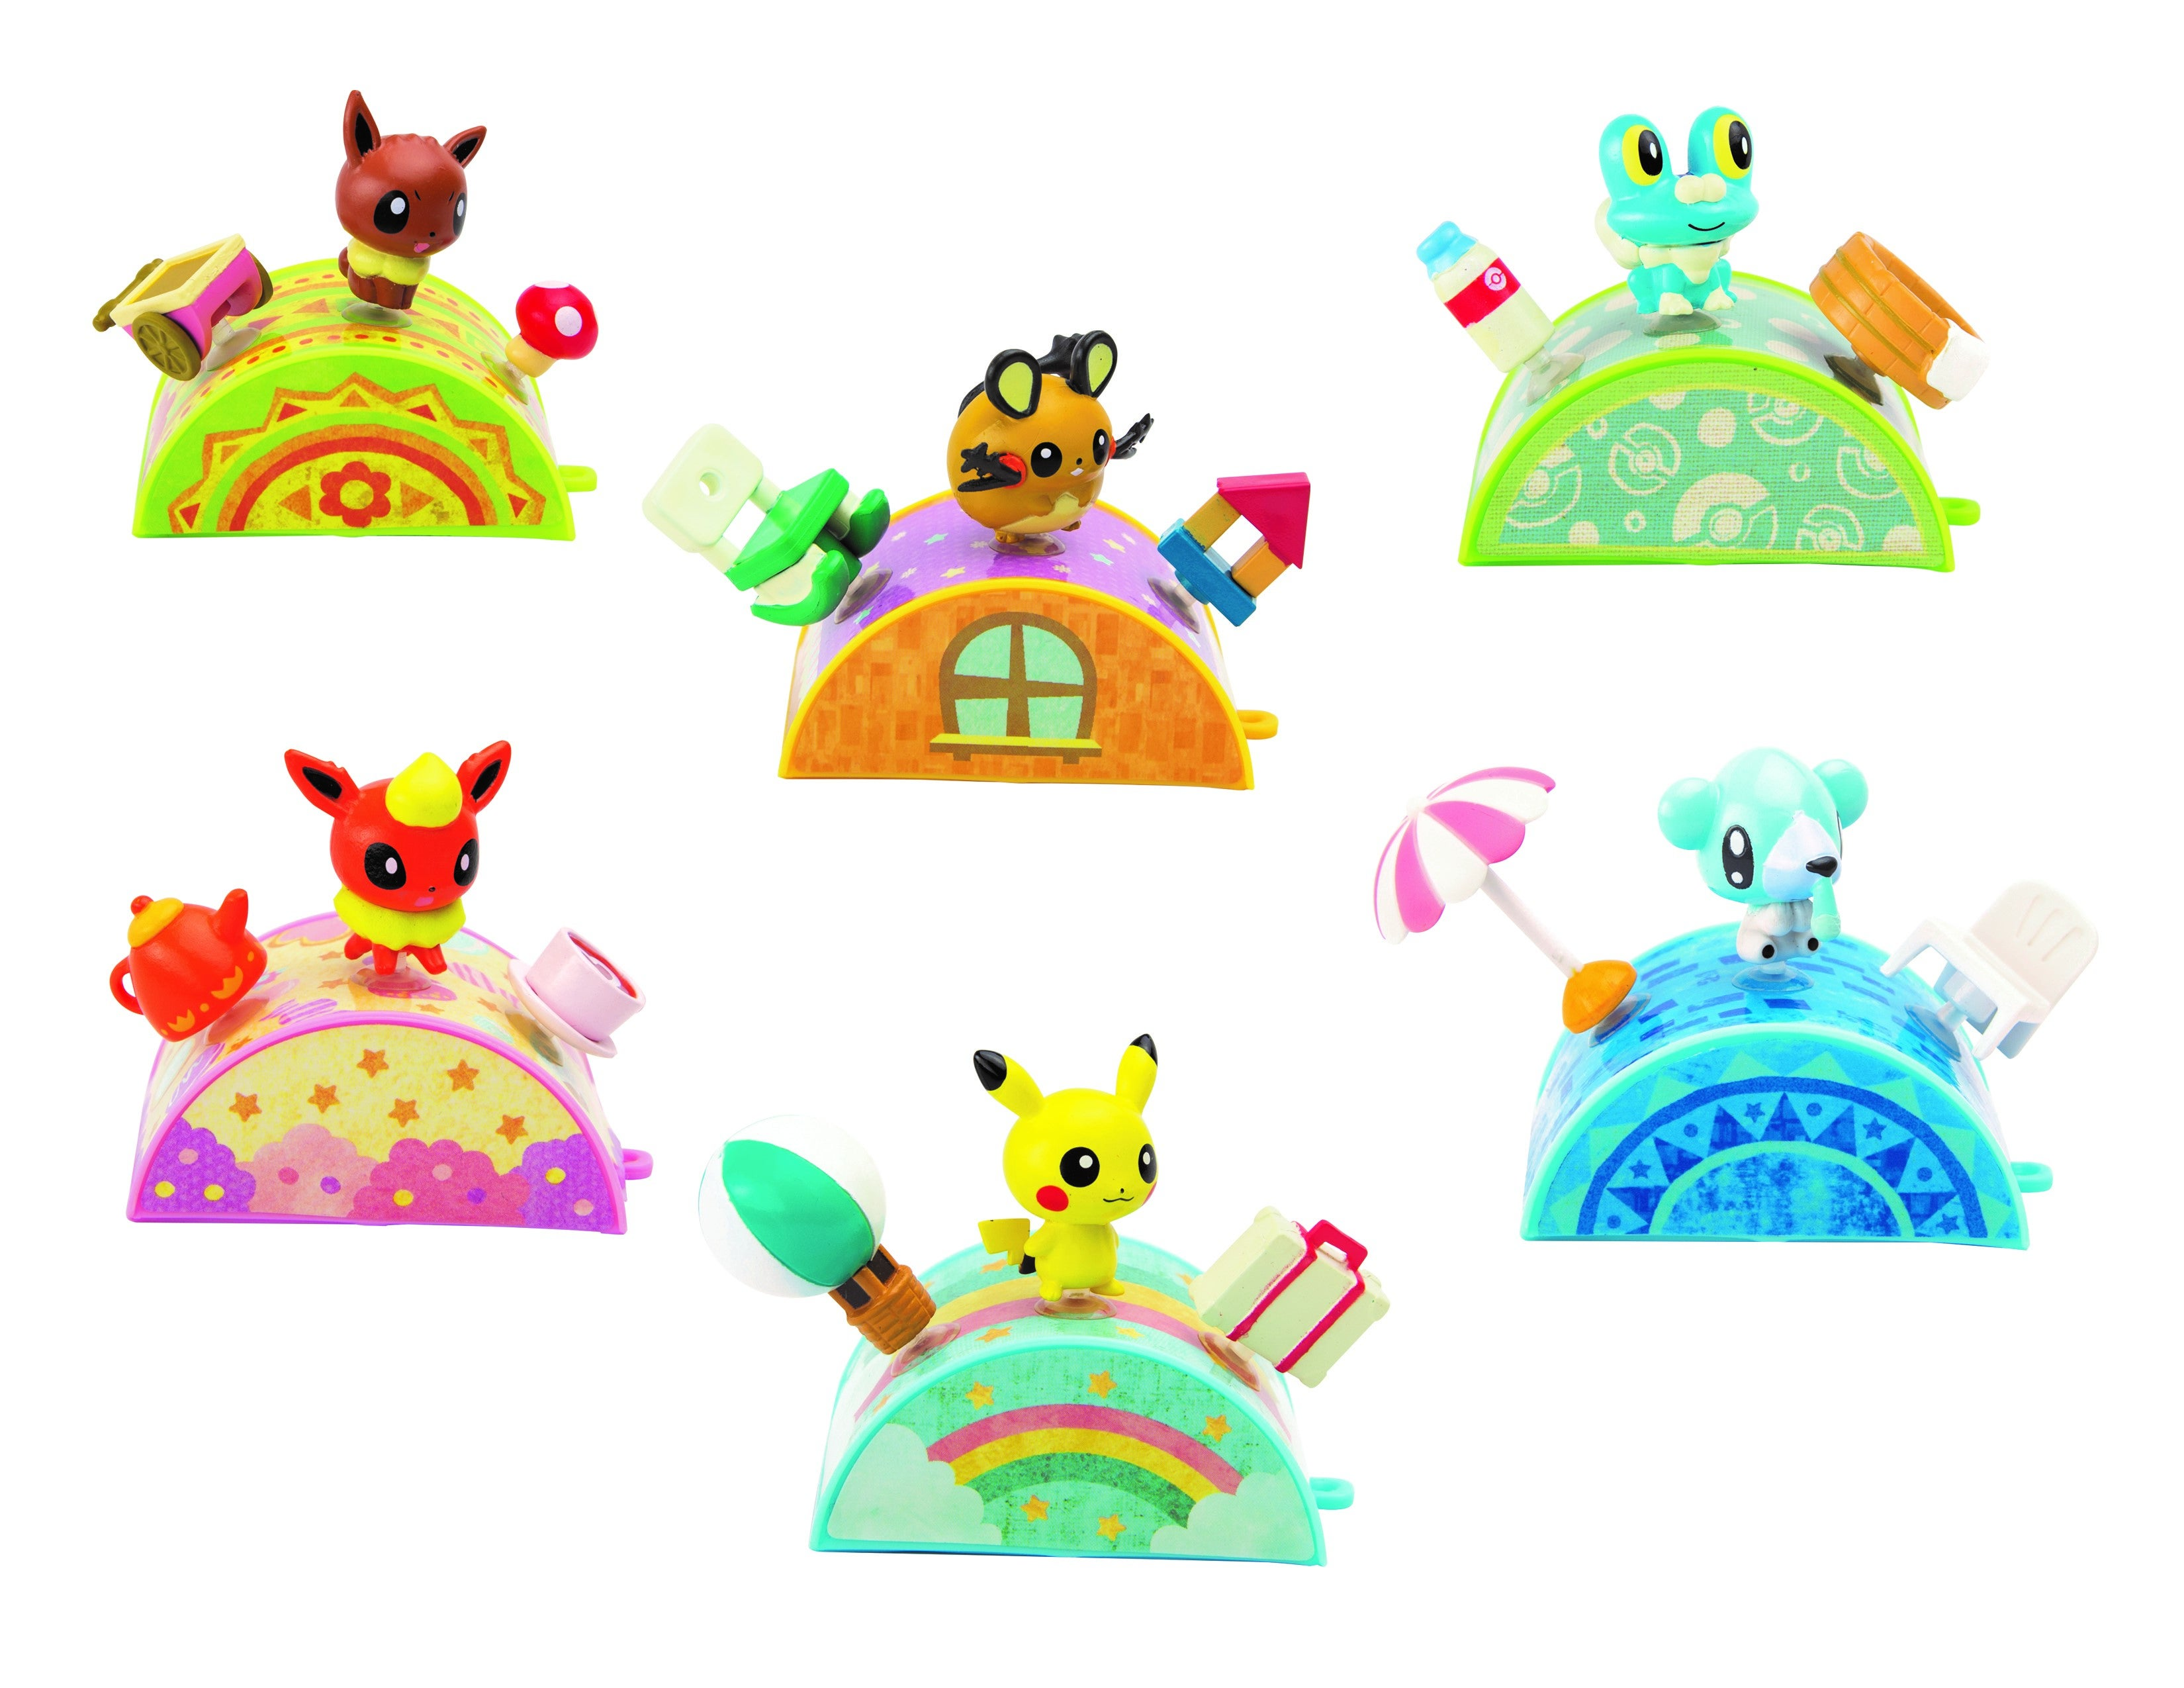 These Pokémon Toys Are For Girls But Boys Will Want Them Too